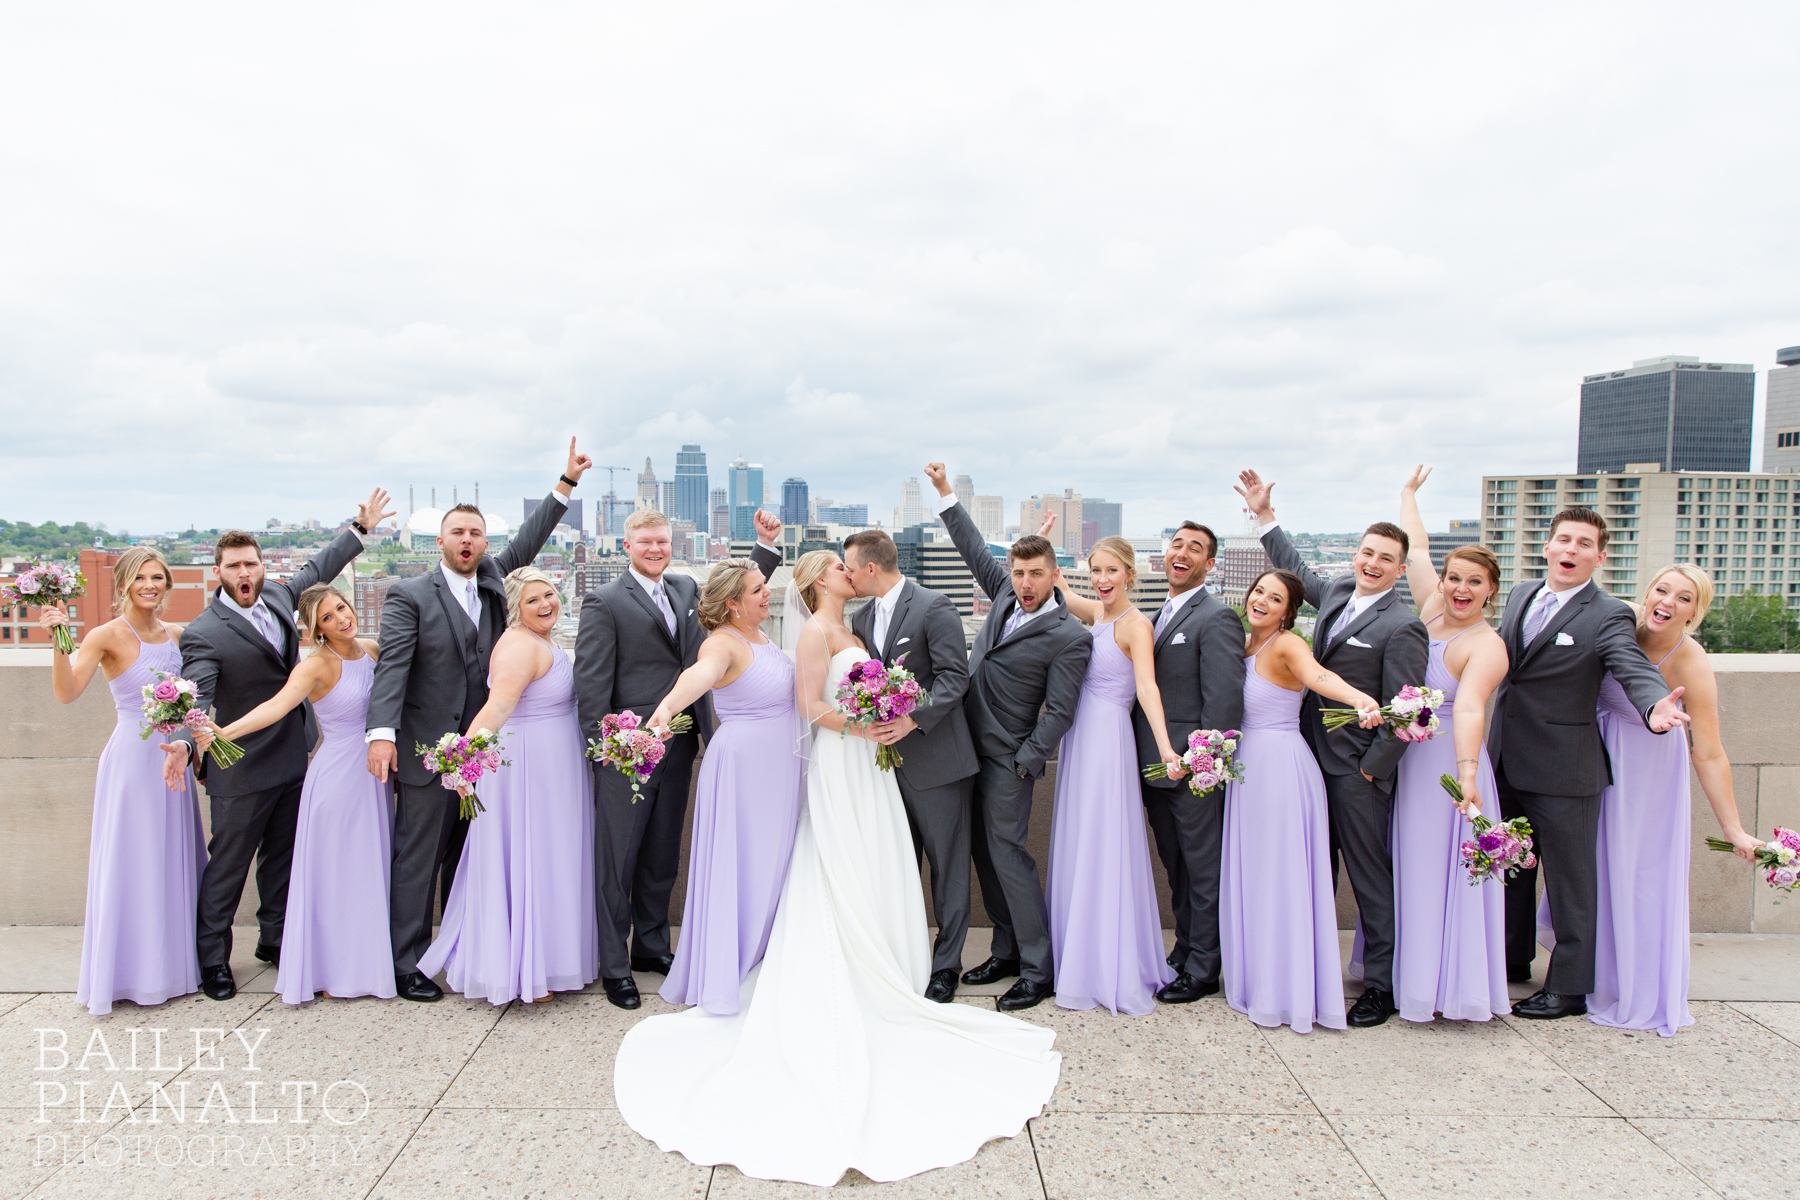 Elegant Lilac & Green Spring Wedding Inspiration at the WWI Memorial with planner - As You Wish KC, gown - Belle Vogue Bridal, flowers - Lily Floral Designs, catholic church ceremony - St. Michael the Archangel, venue - Embassy Suites Olathe |  Kansas City, MO